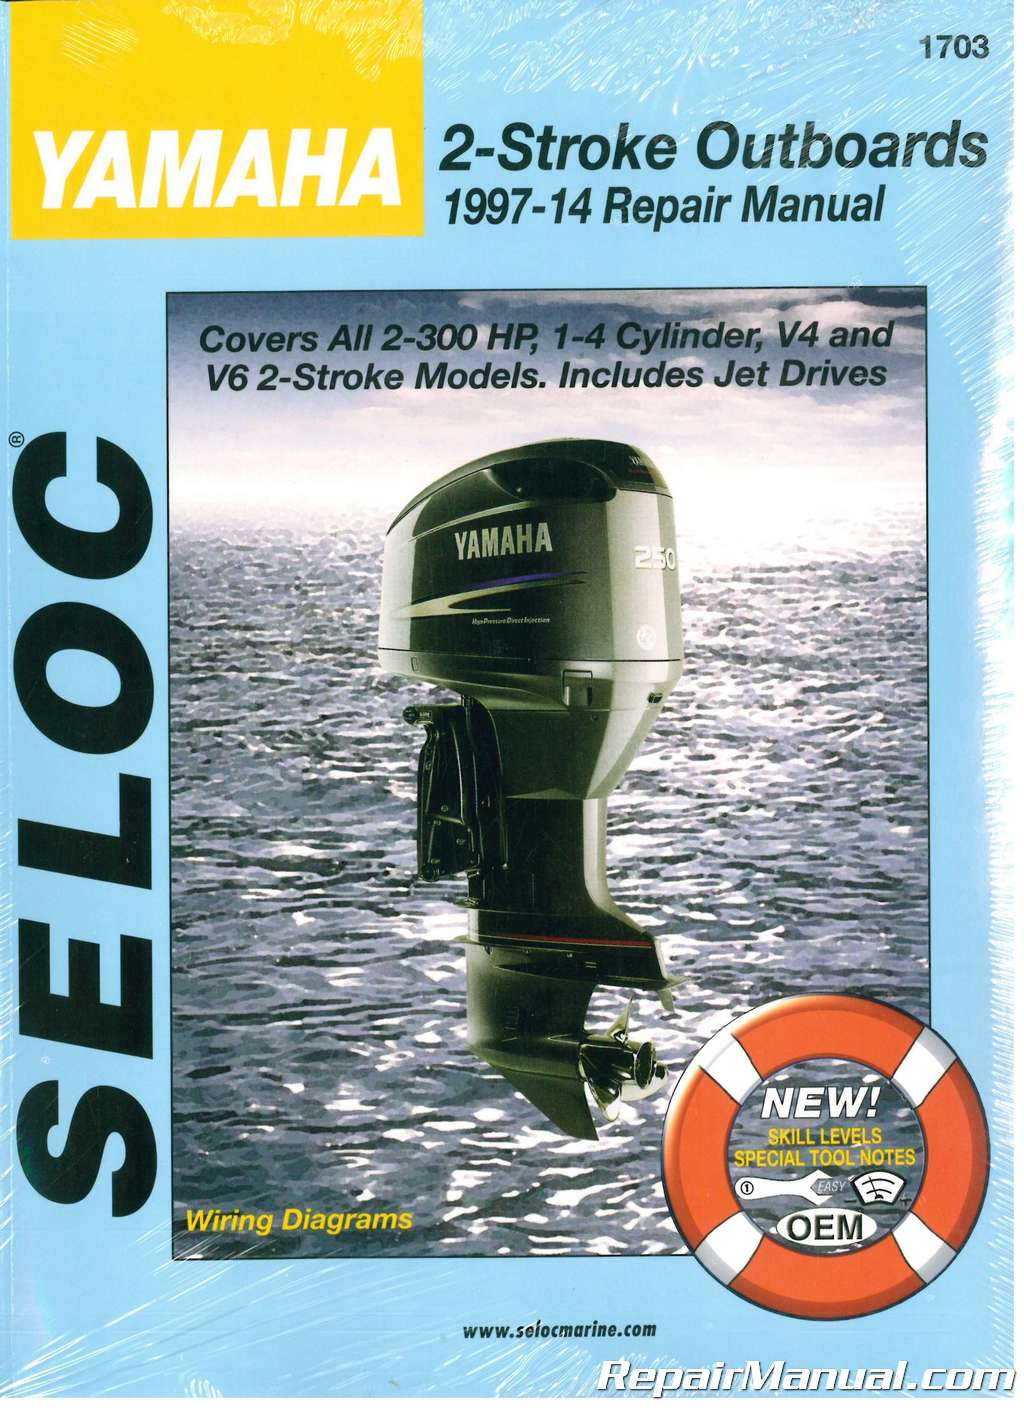 Yamaha Outboard 2 Stroke Engine Repair Manual 1997 2014 By